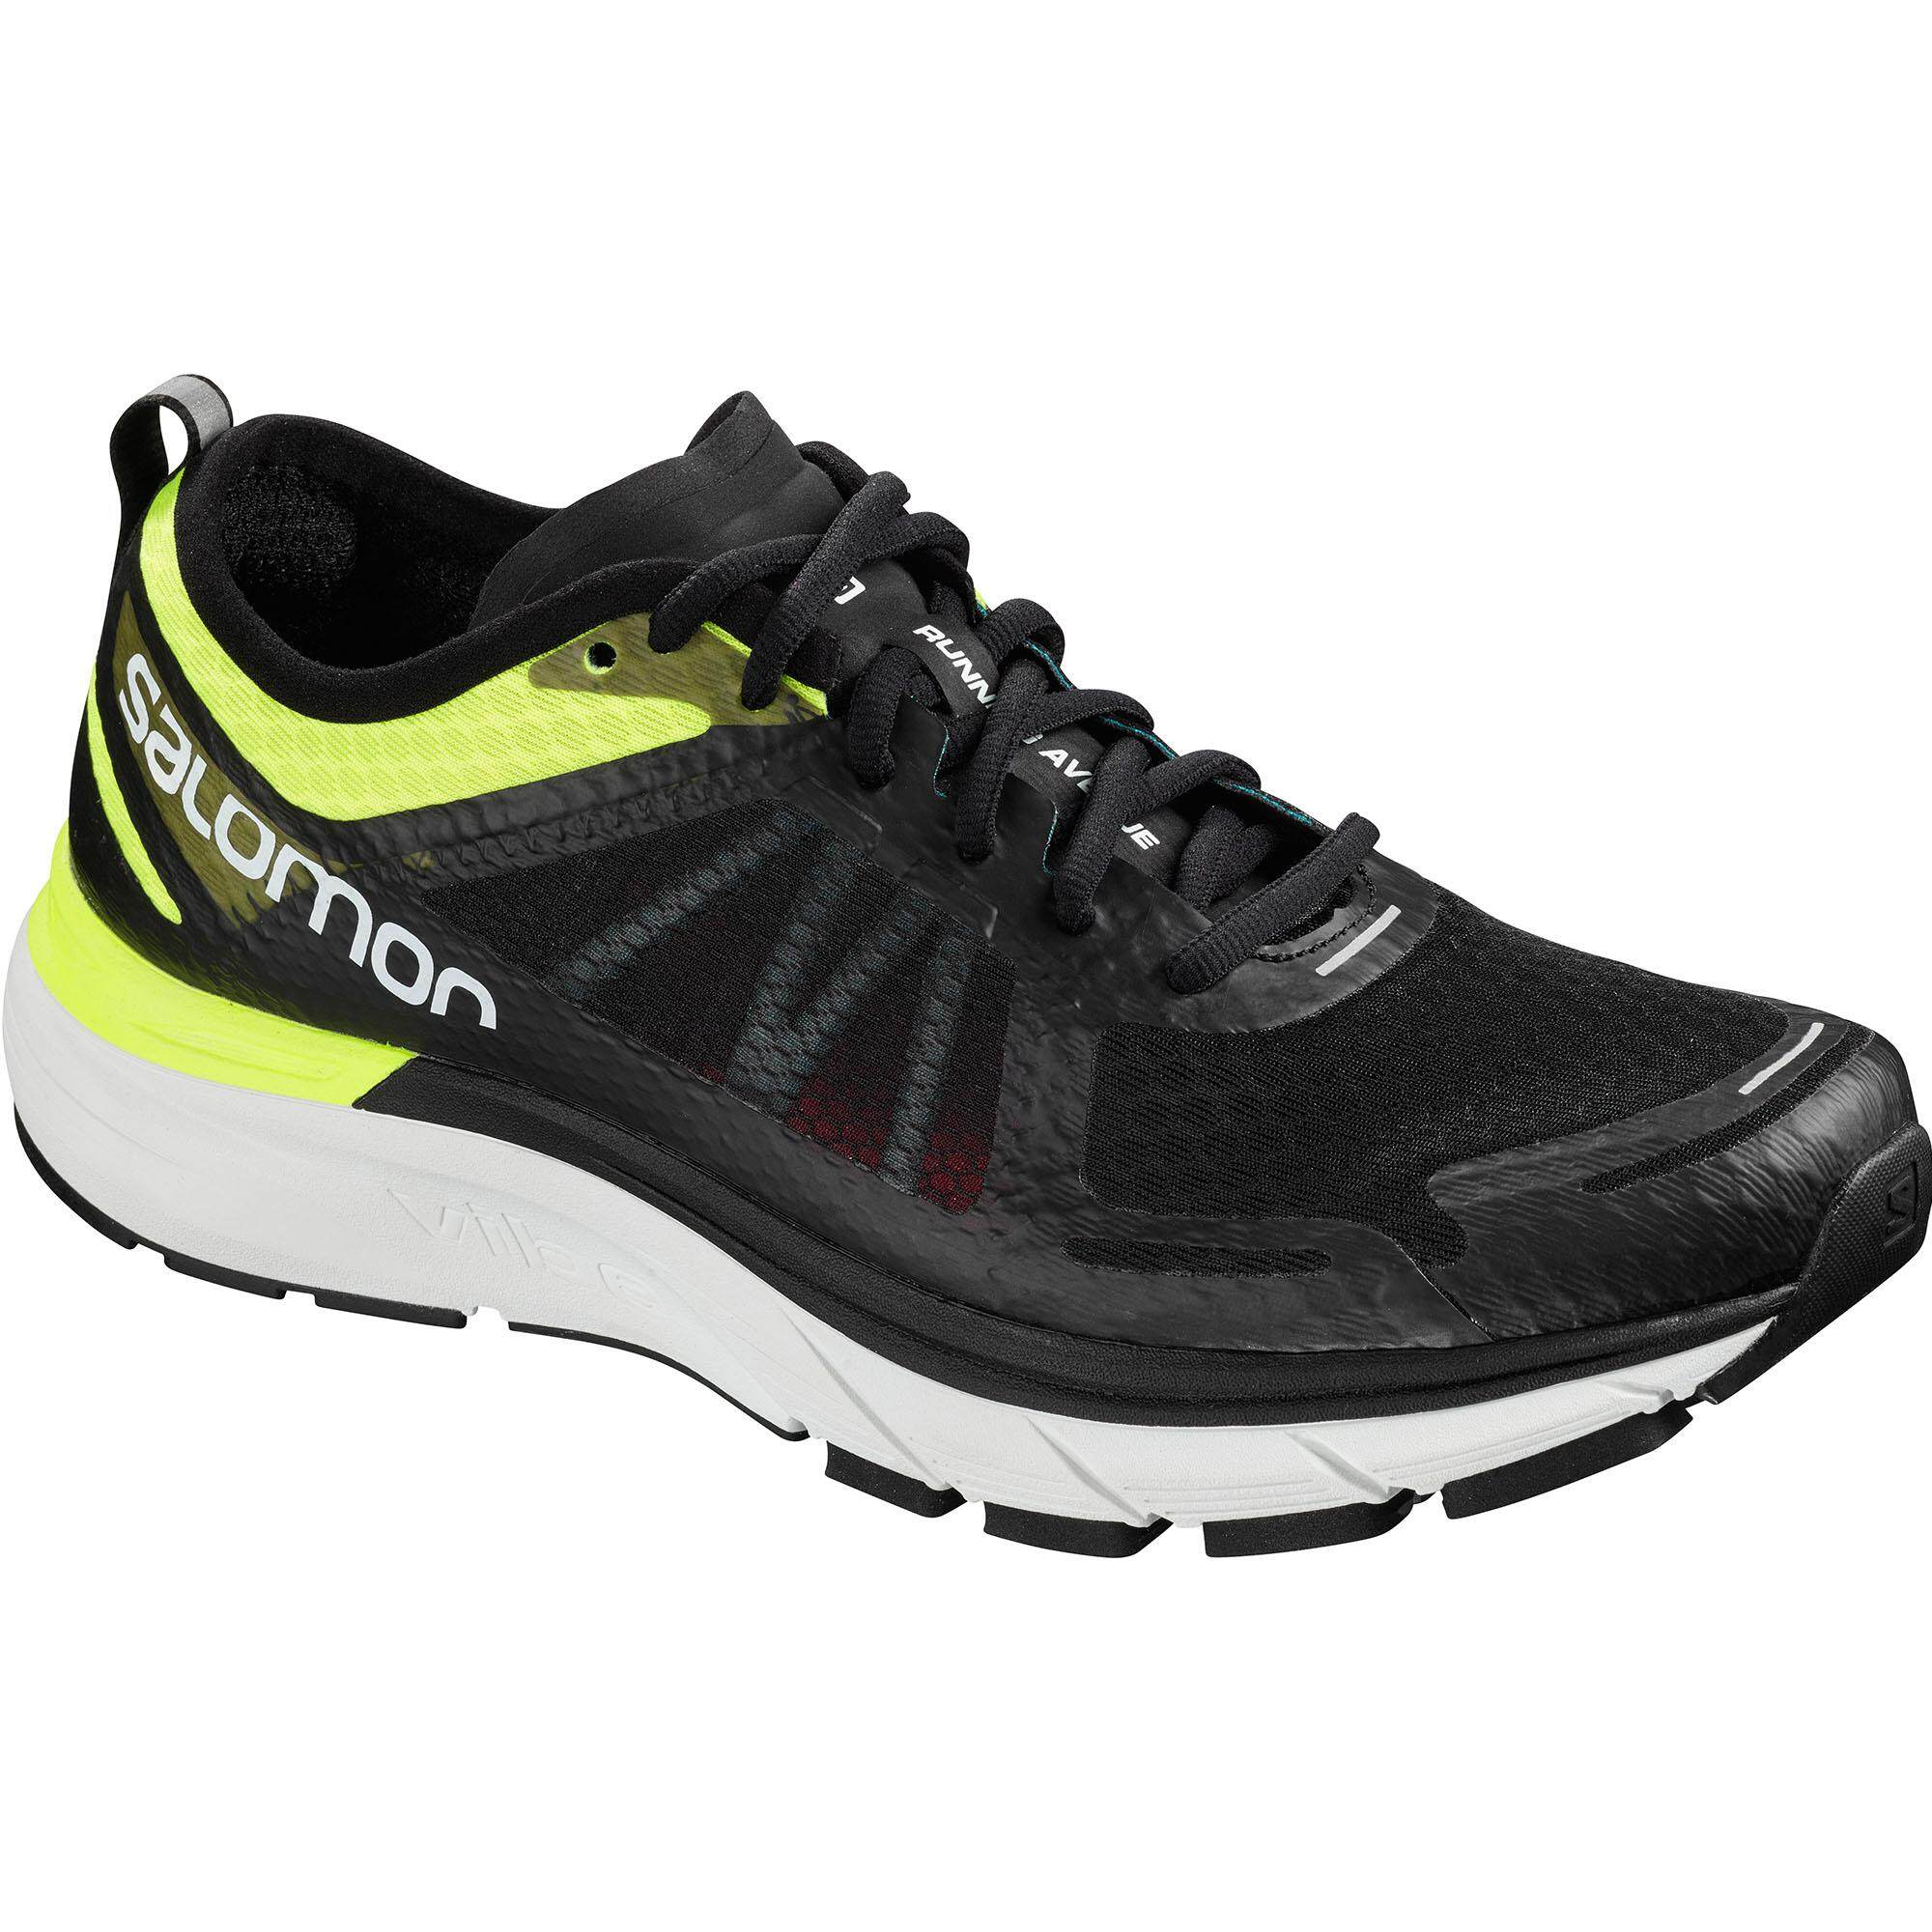 Malaysia Men's Salomon In Best Clothing Price amp; Shoes a6nCd6q